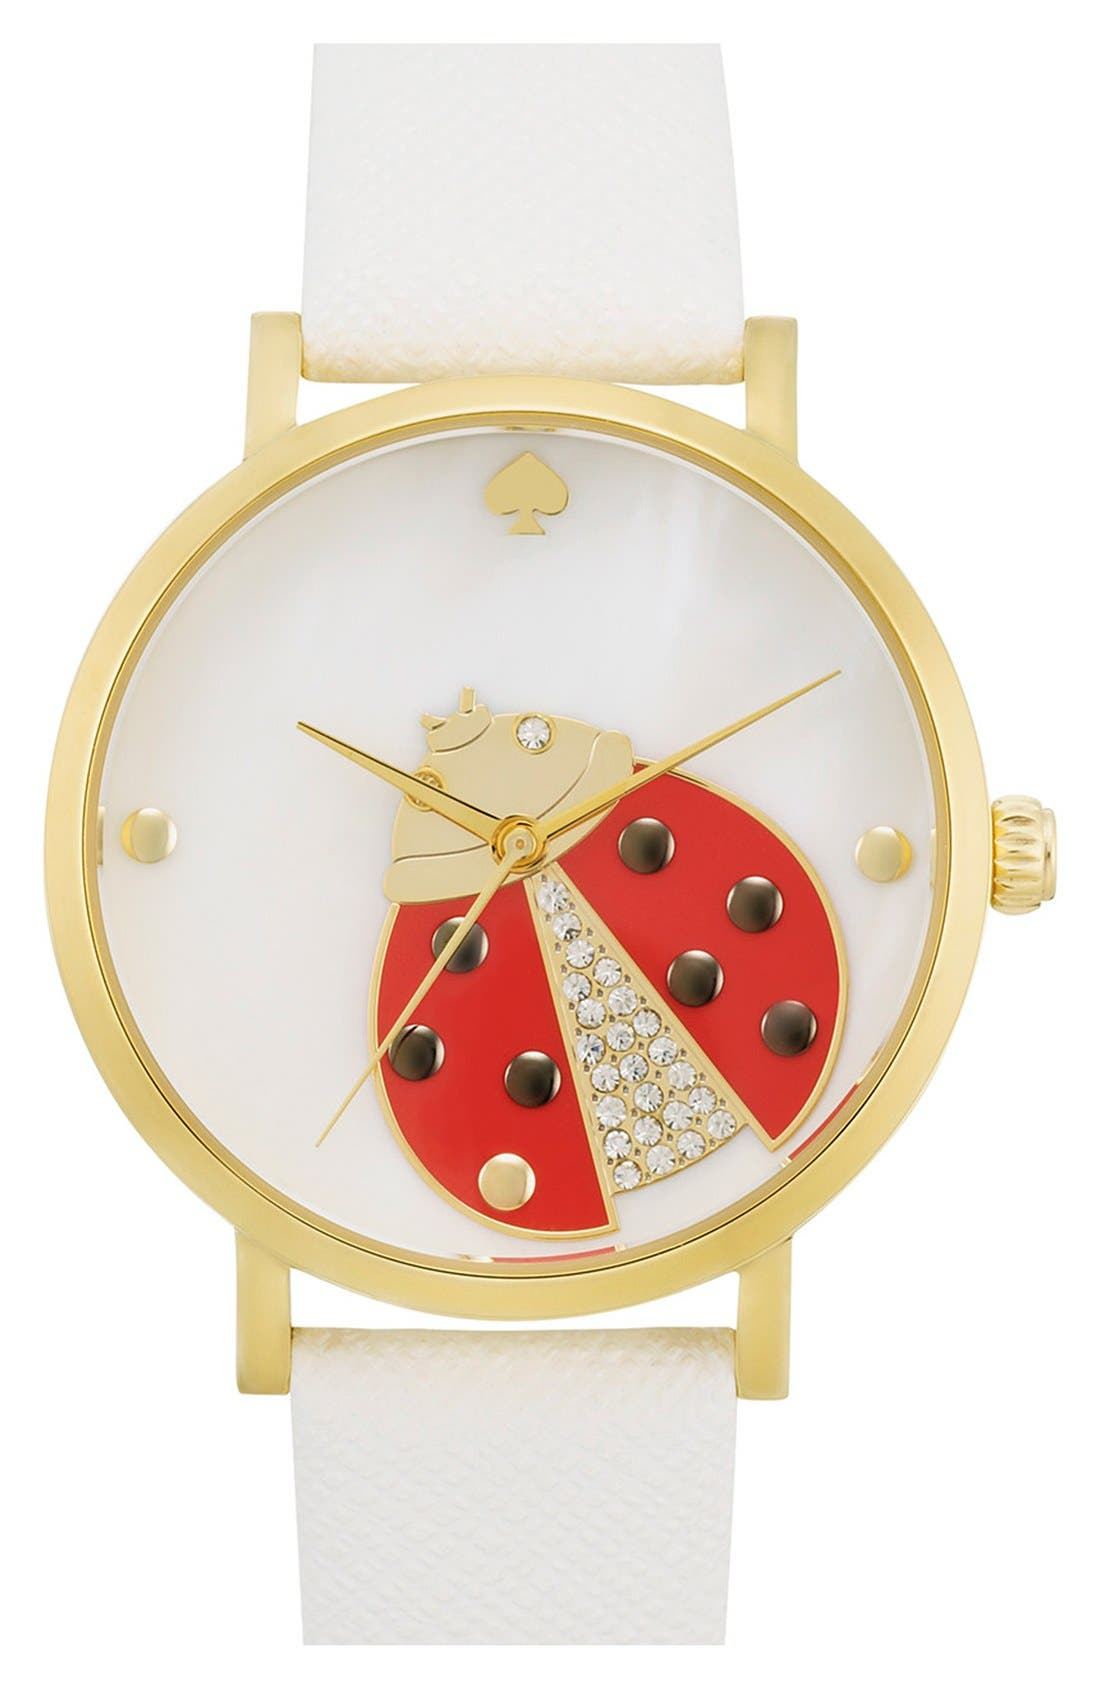 Alternate Image 1 Selected - kate spade new york 'metro' ladybug dial leather strap watch, 34mm